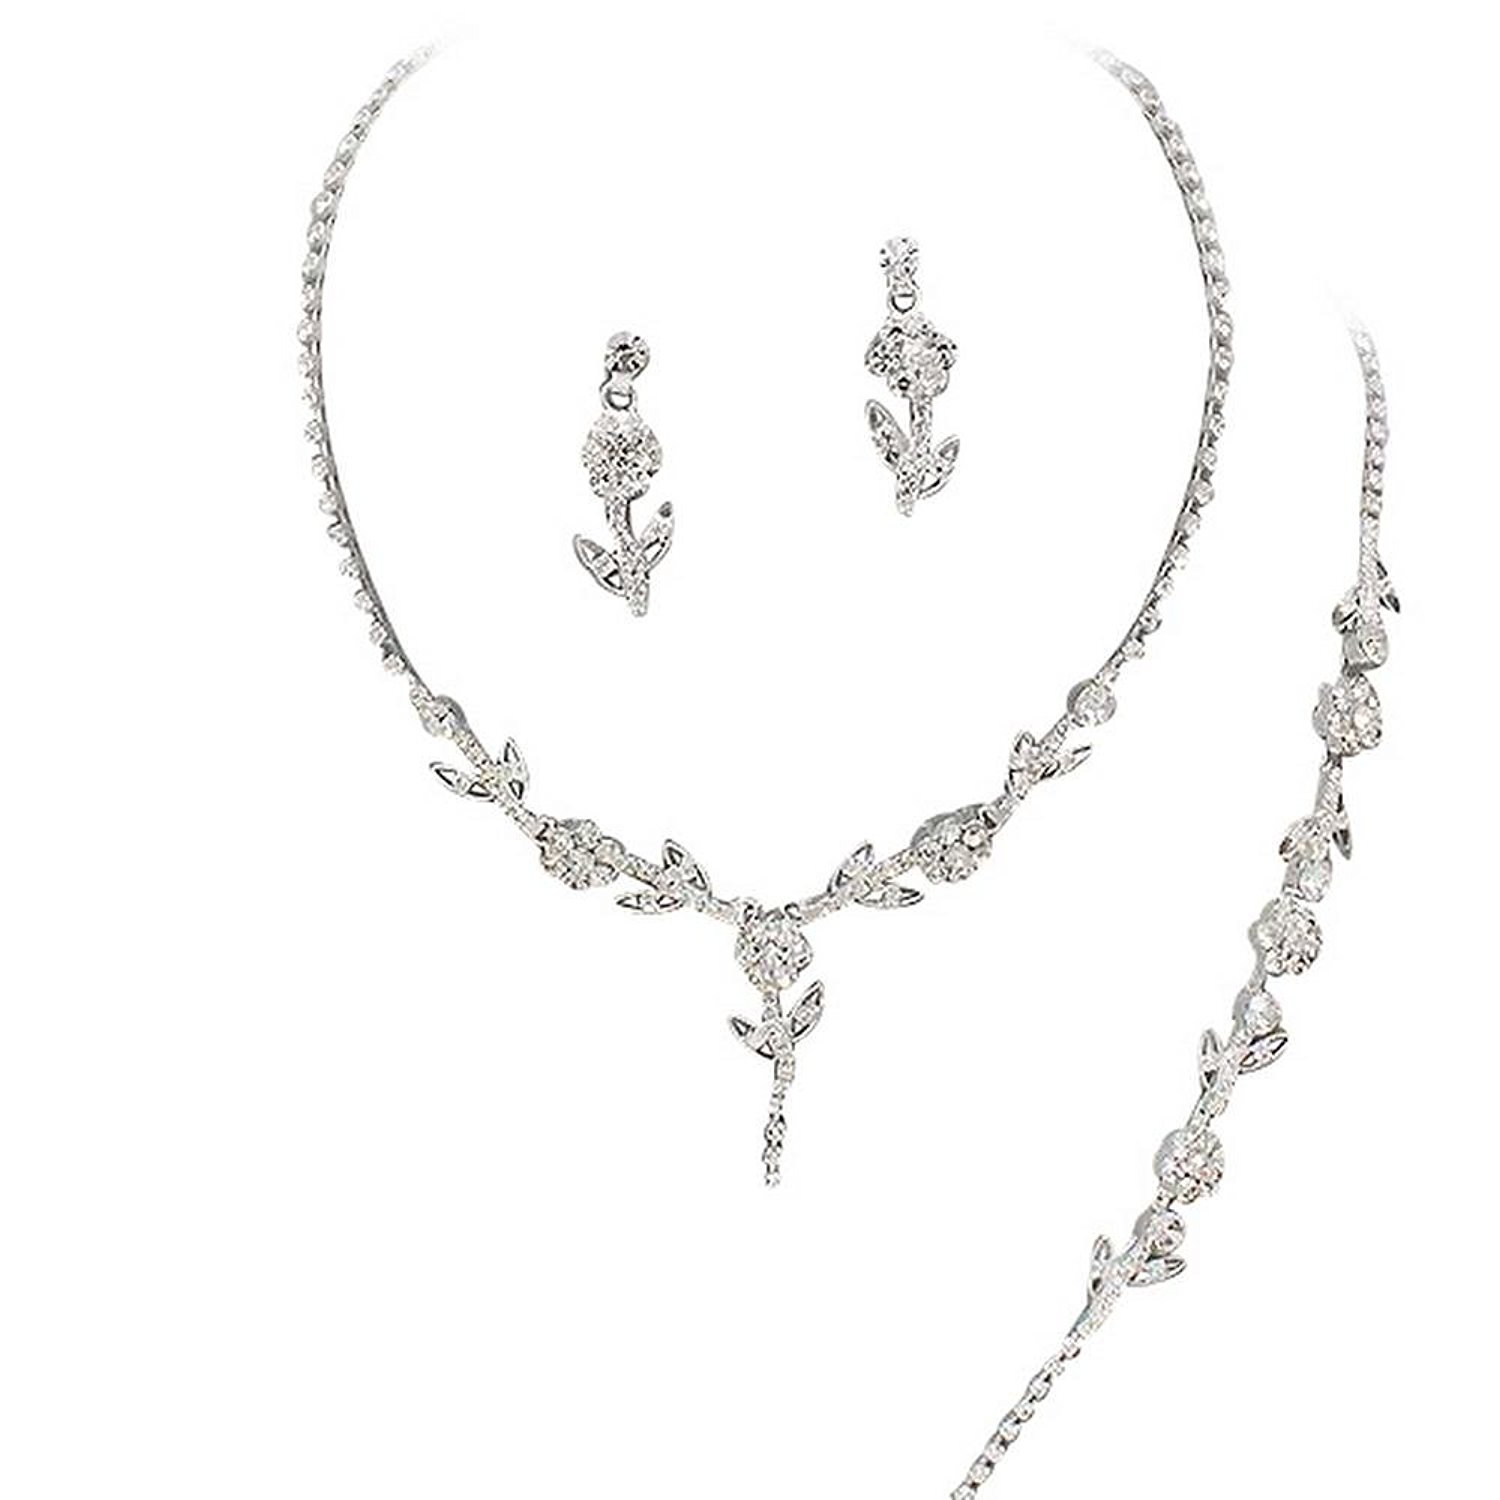 Affordable Crystal 3 Piece BRIDESMAID Bridal Necklace, Earring, Bracelet, Set O1